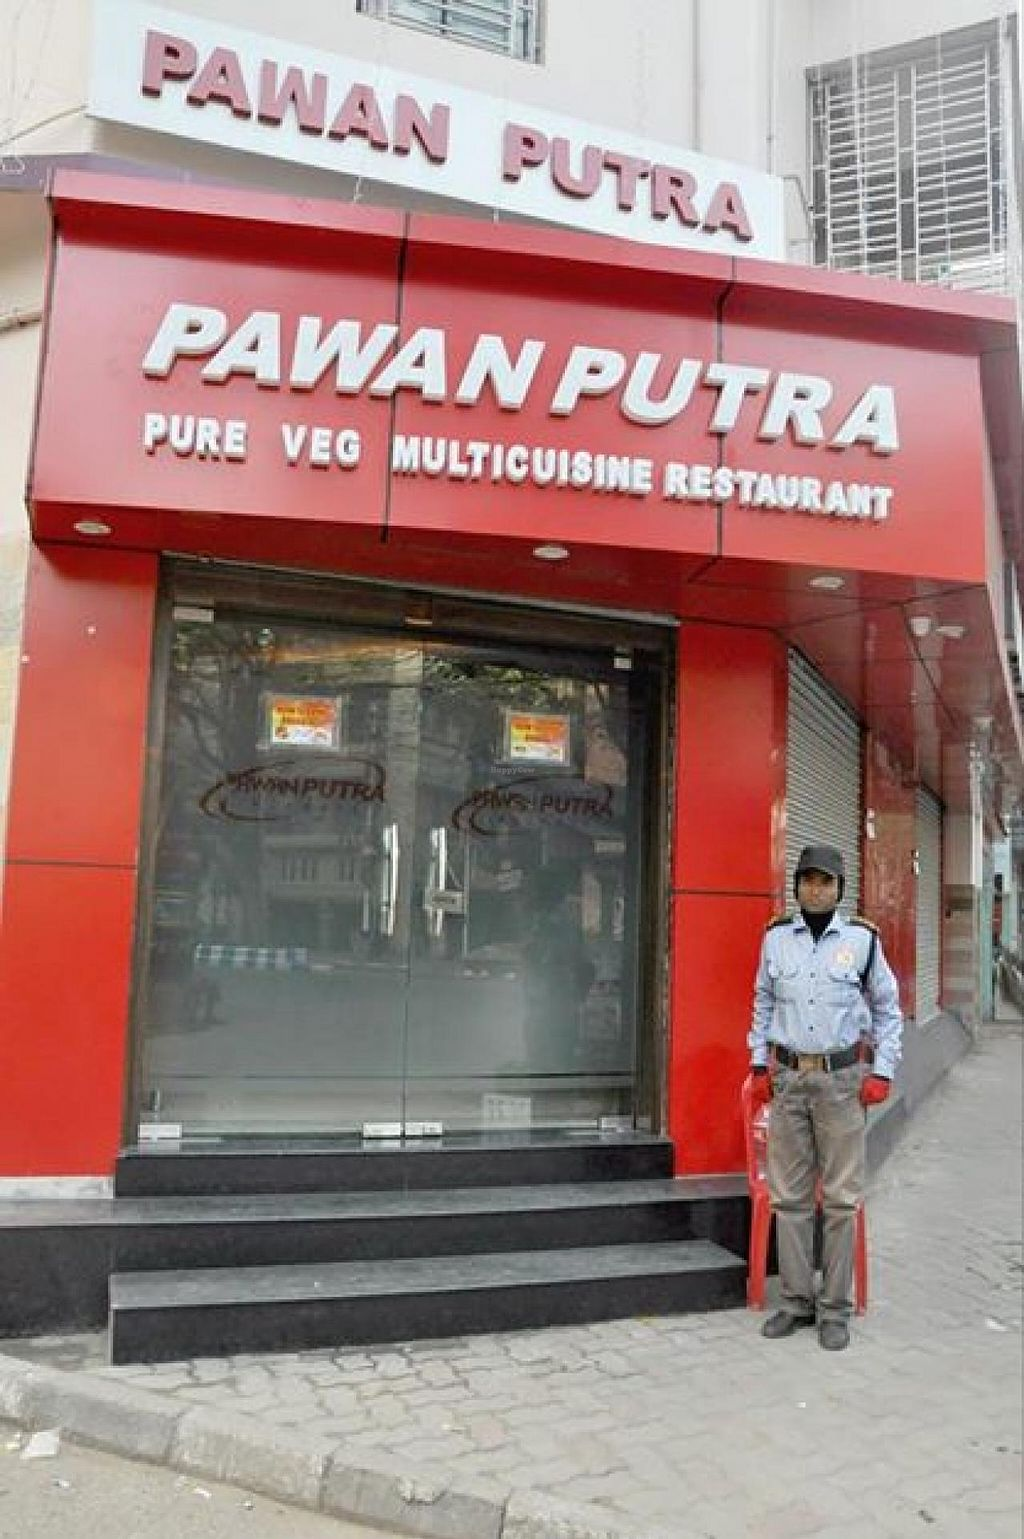 """Photo of Pawan Putra  by <a href=""""/members/profile/community"""">community</a> <br/>Pawan Putra <br/> January 24, 2015  - <a href='/contact/abuse/image/55120/91318'>Report</a>"""